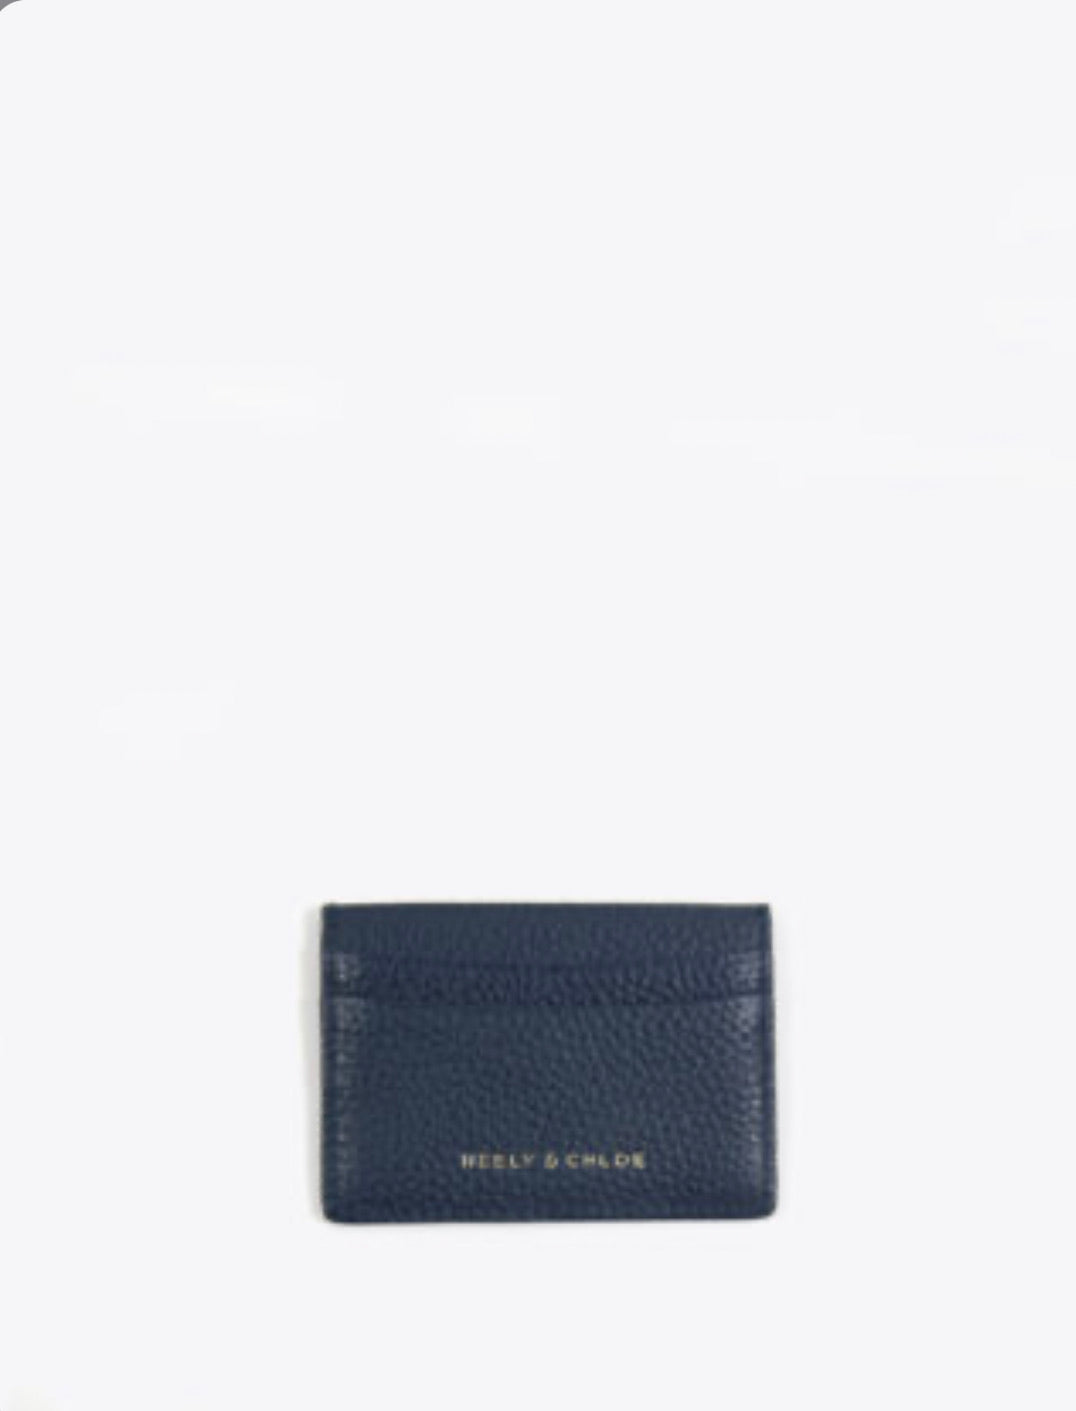 Neely & Chloe - No. 12 The Card Case Saffiano - Navy